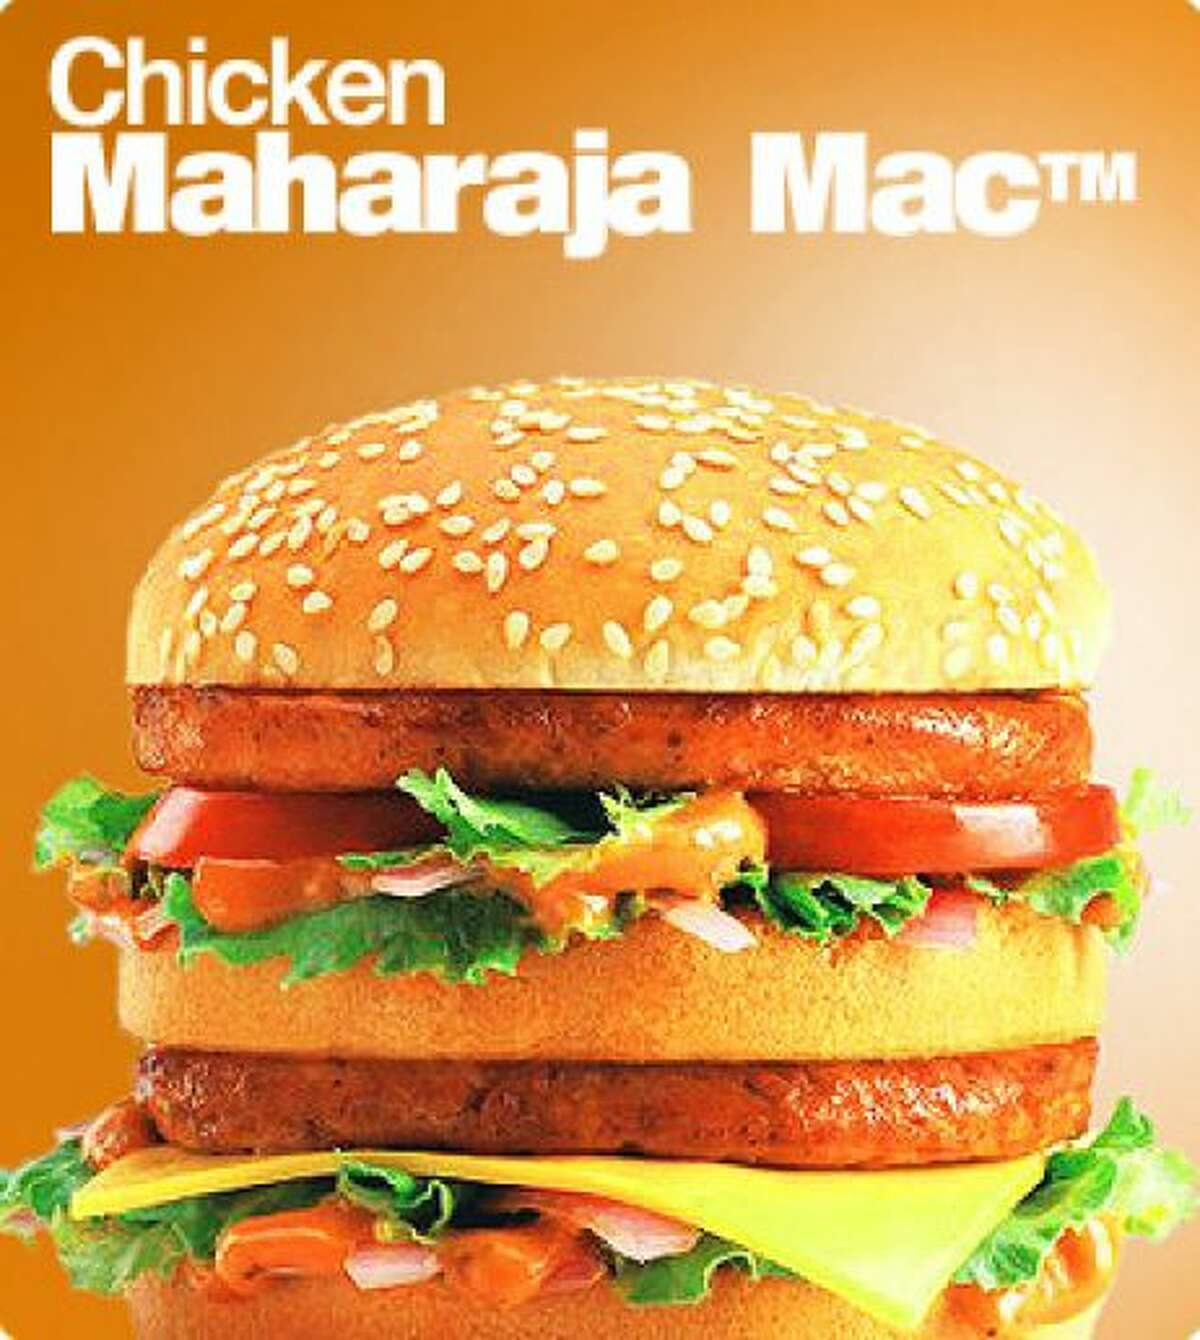 McDonald's in India offers vegetarian-only restaurants and specials like the Maharaja Mac, which is a Big Mac with chicken patties instead of beef.